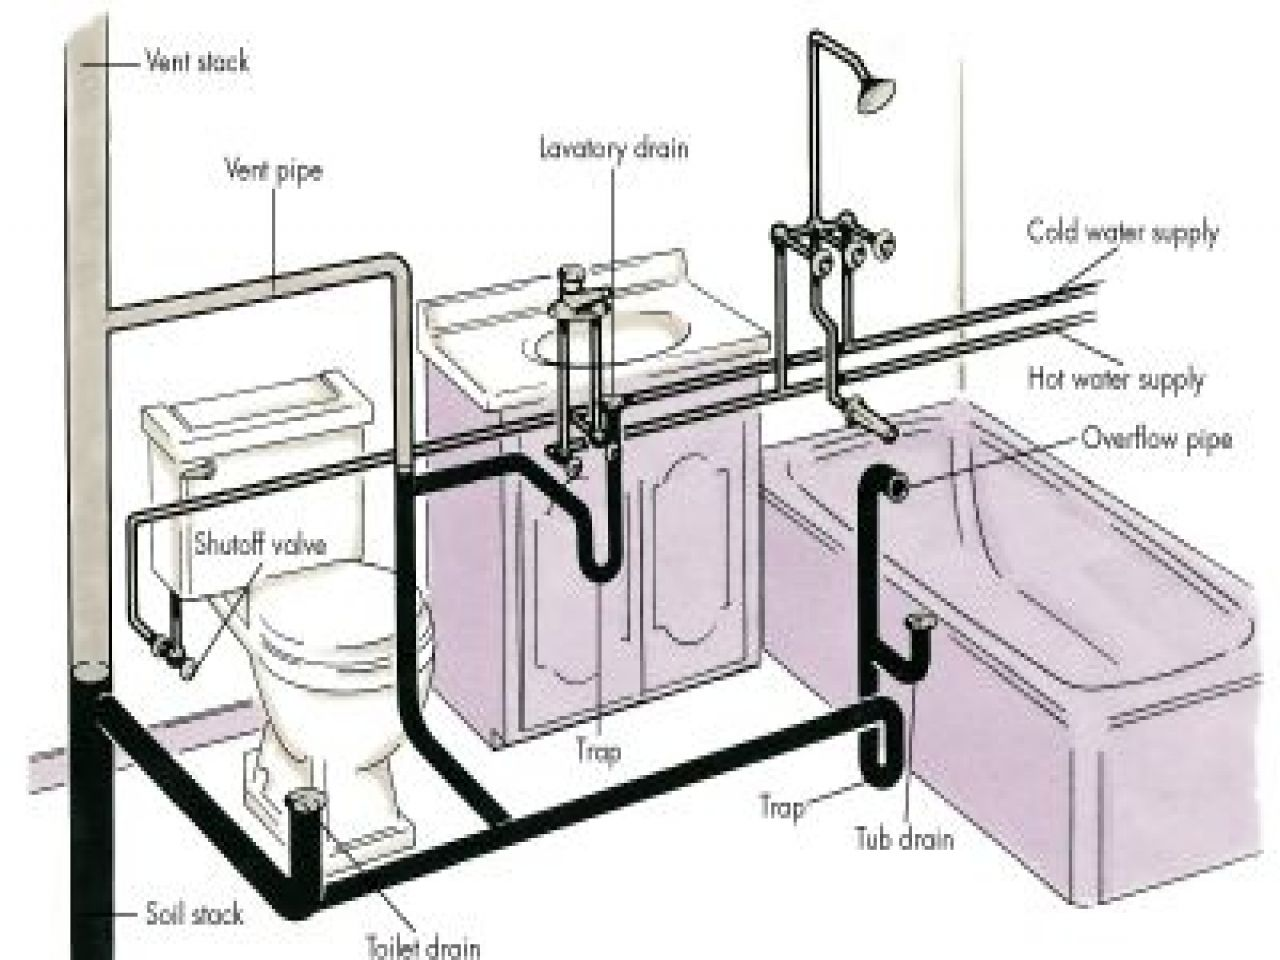 How Much Does It Cost To Rough In Plumbing For A Bathroom